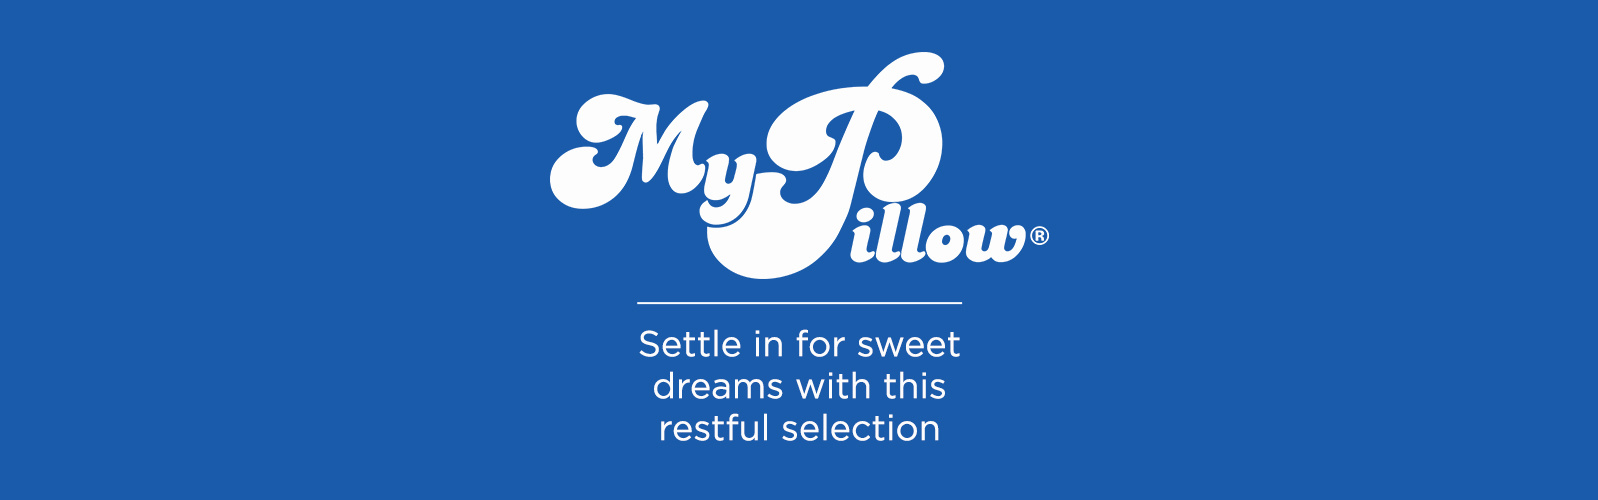 MyPillow - Settle in for sweet dreams with this restful selection